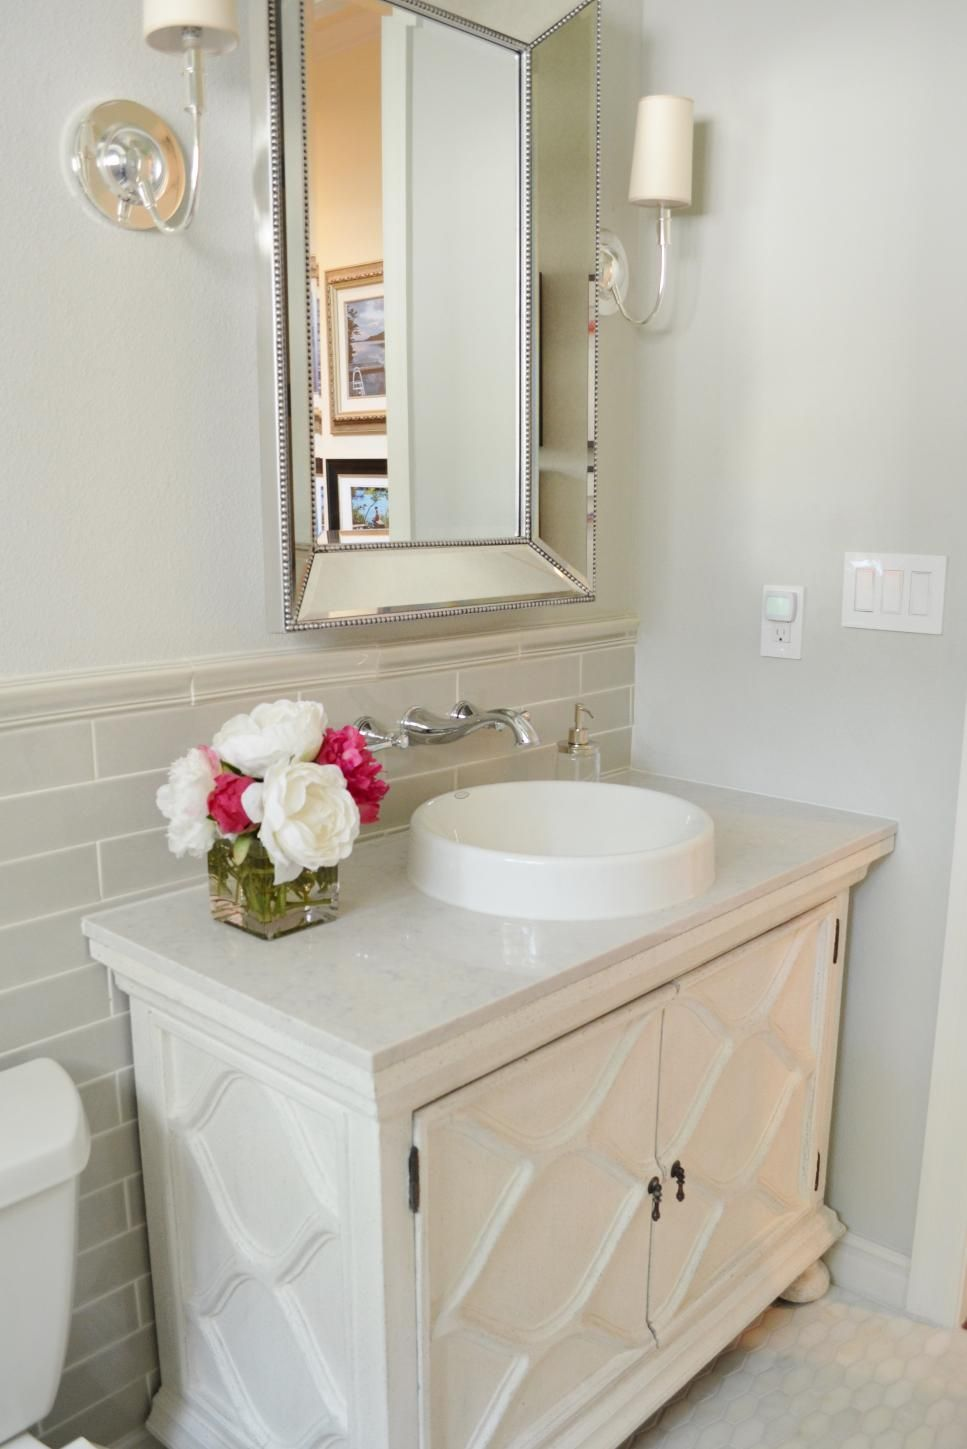 Before And After Bathroom Remodels On A Budget Marble Floor Furniture Styles And Wall Mount